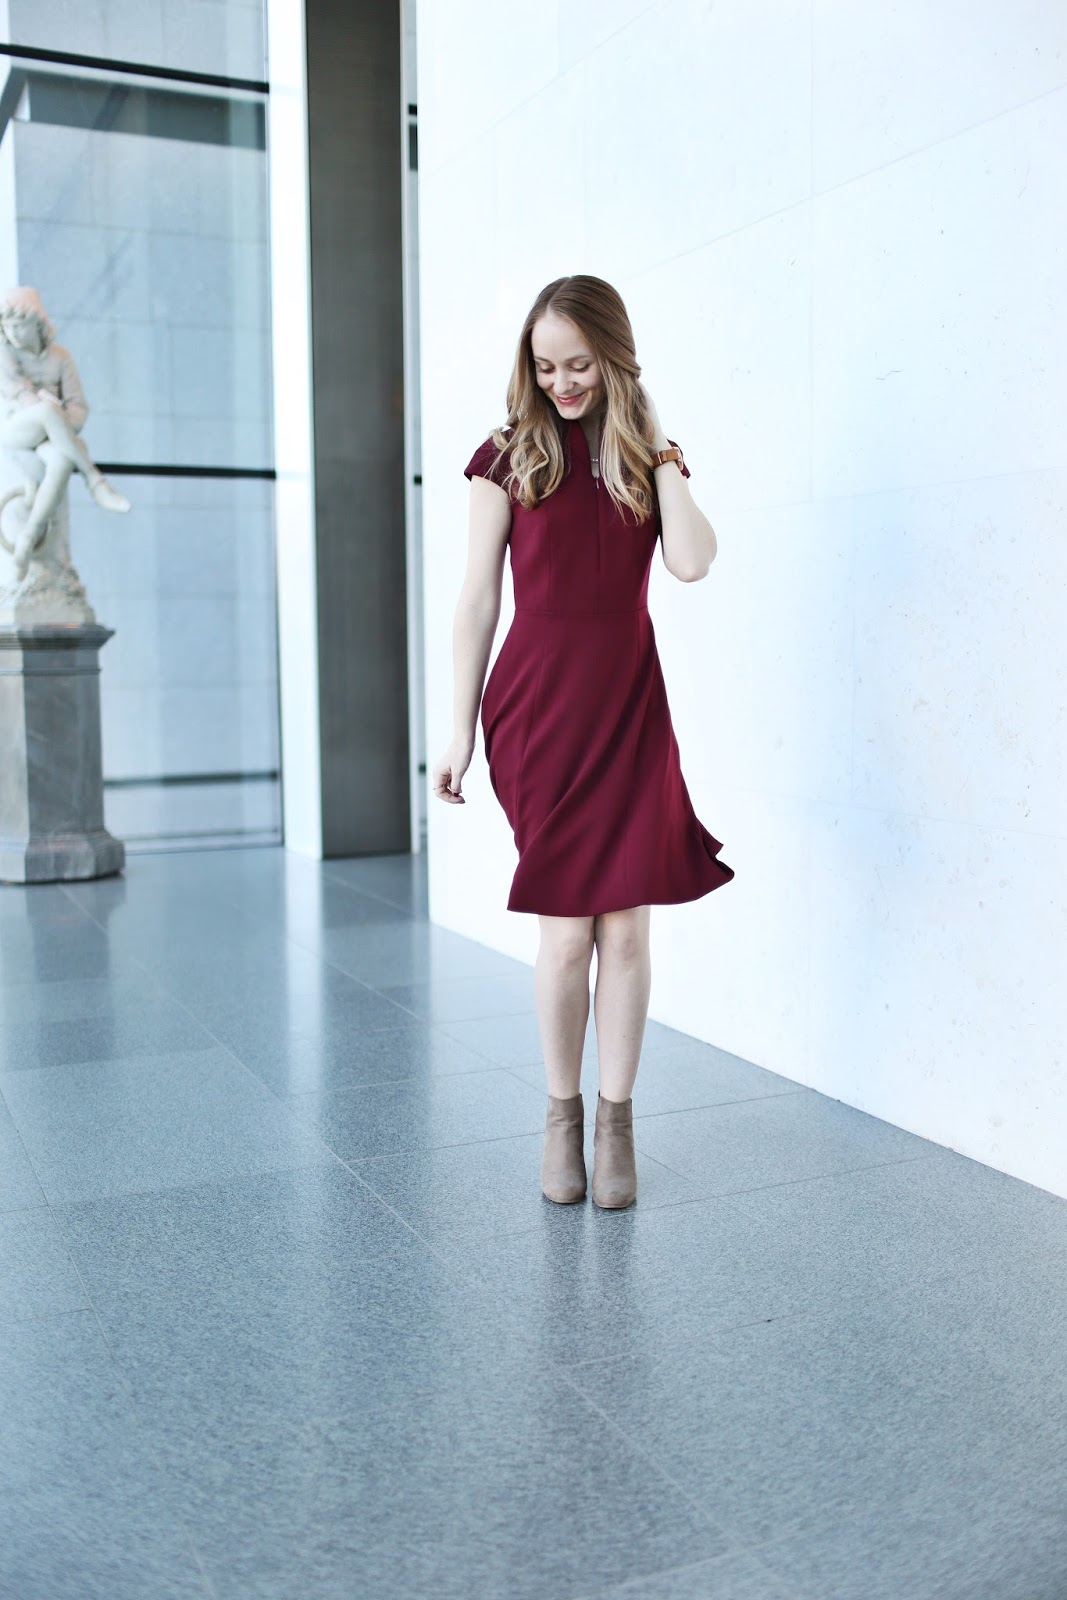 Nora Gardner: Formal Red Dress | Chow Down USA